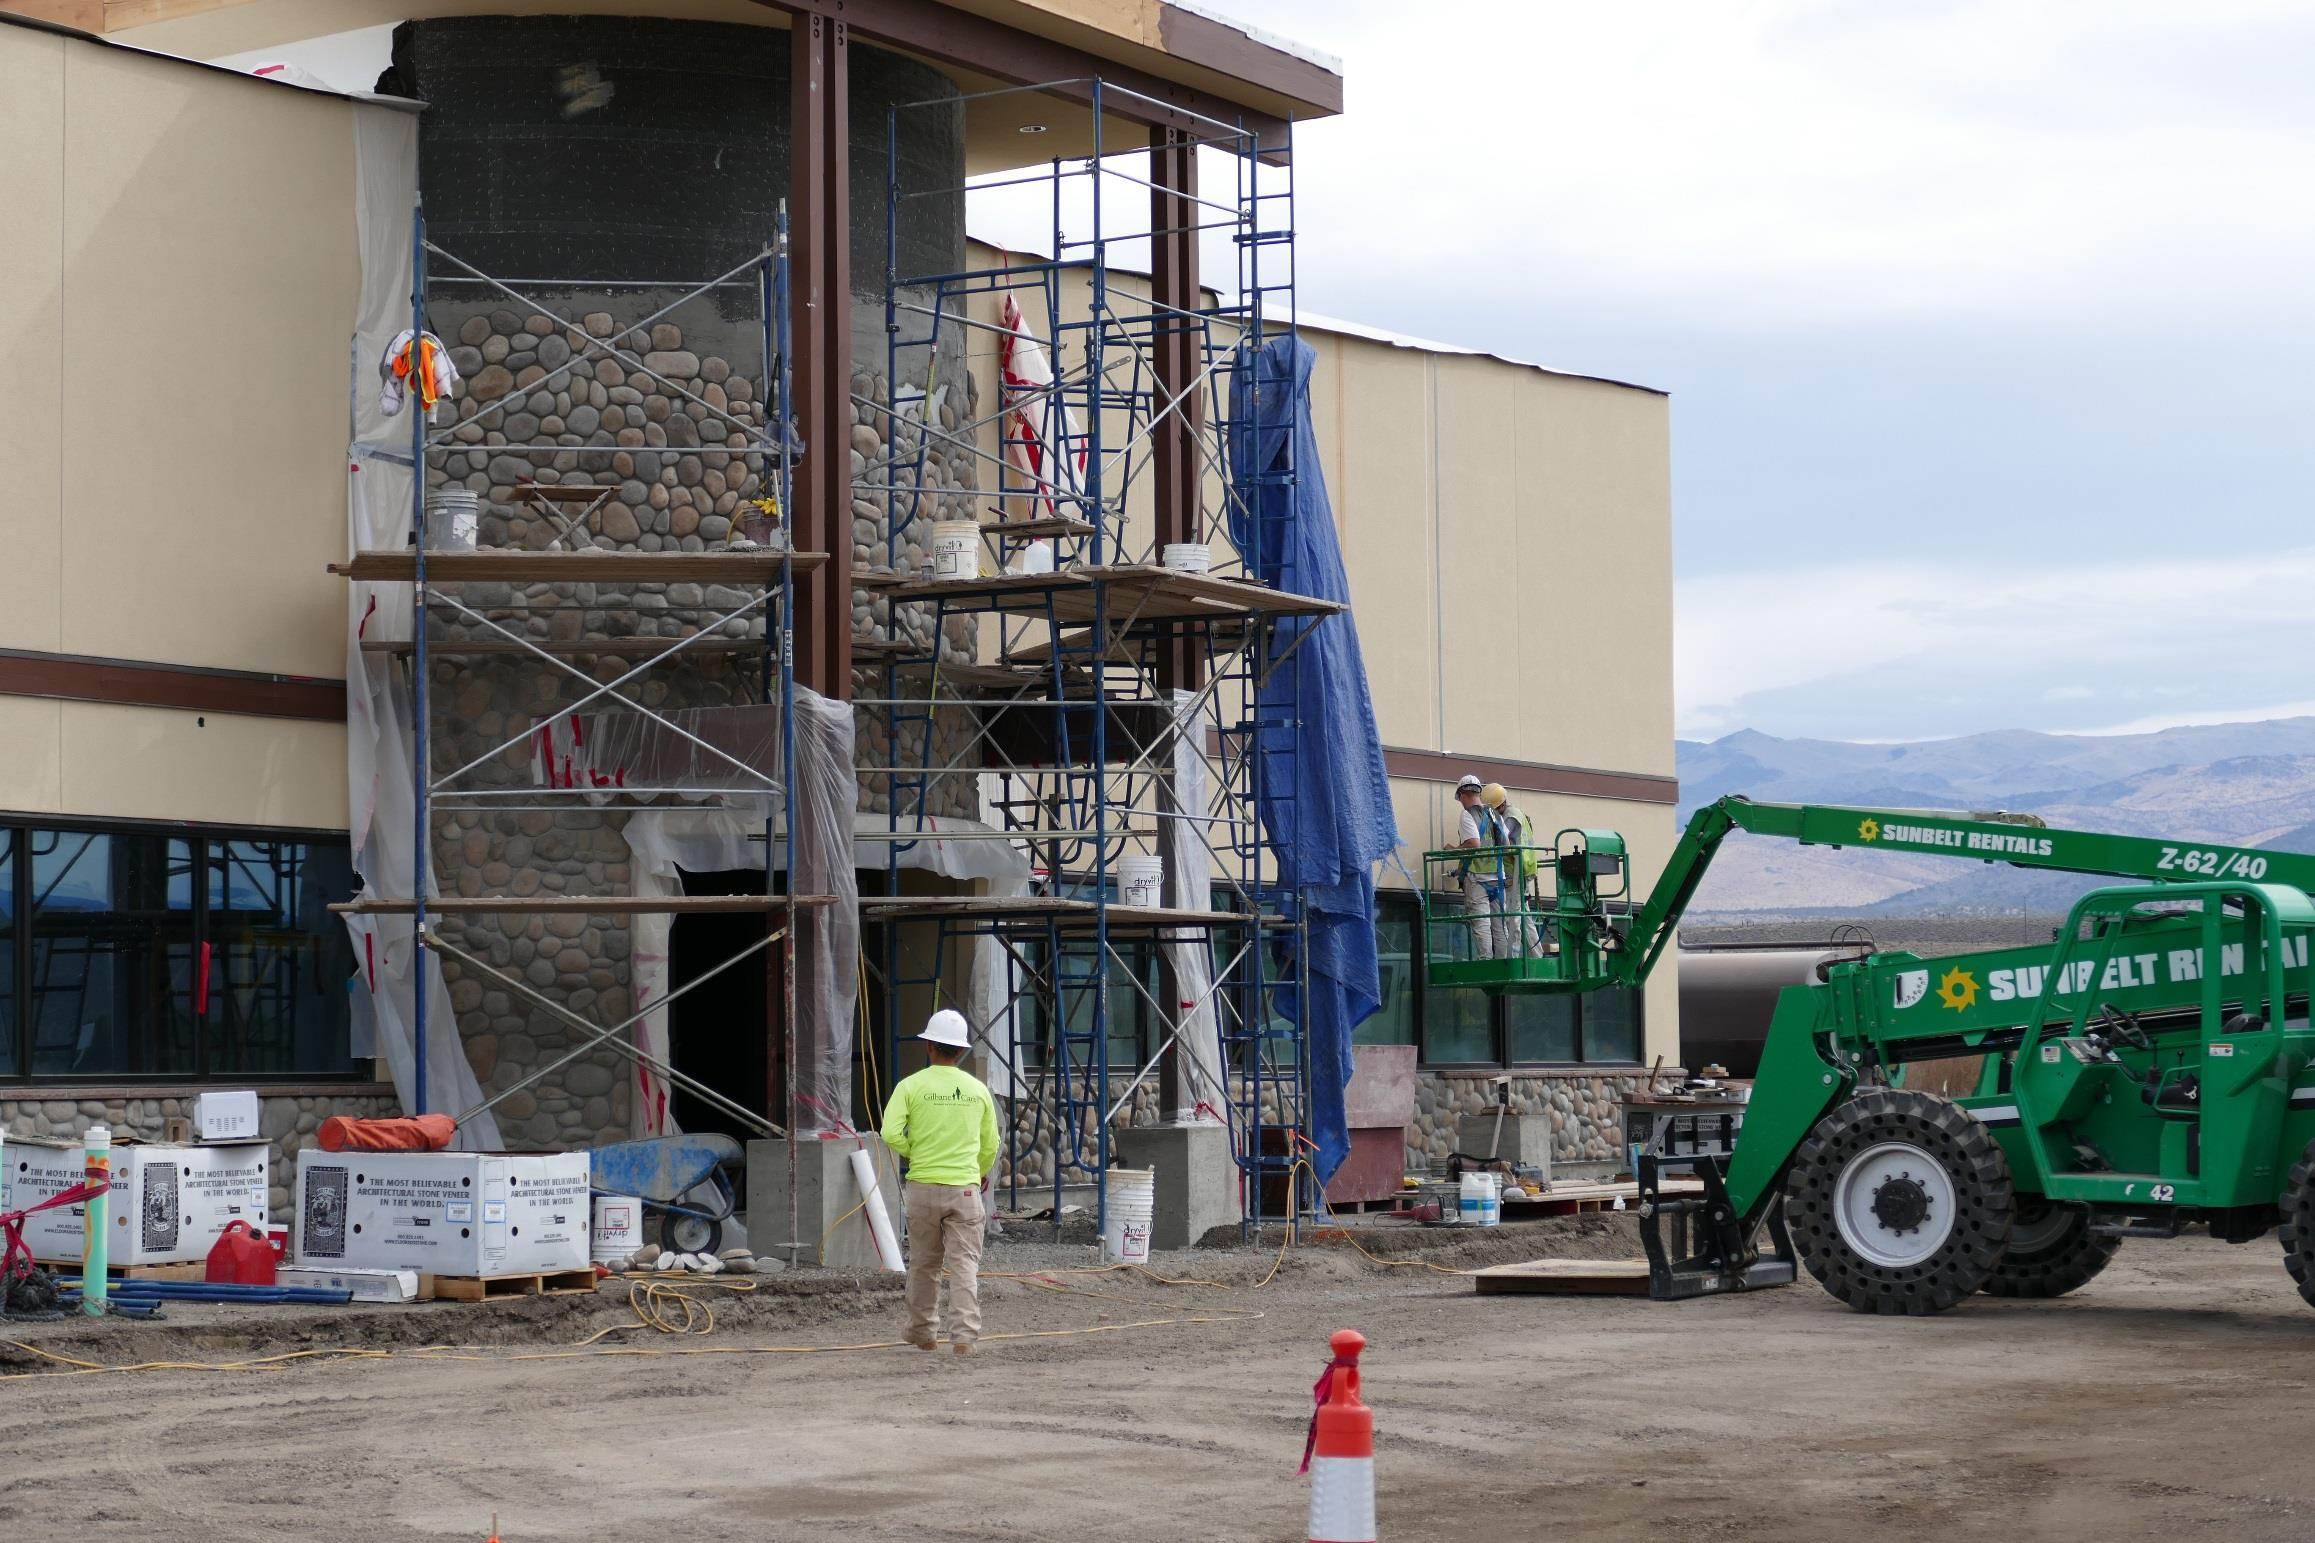 Washoe Tribe and Poarch Creeks start work on casino project